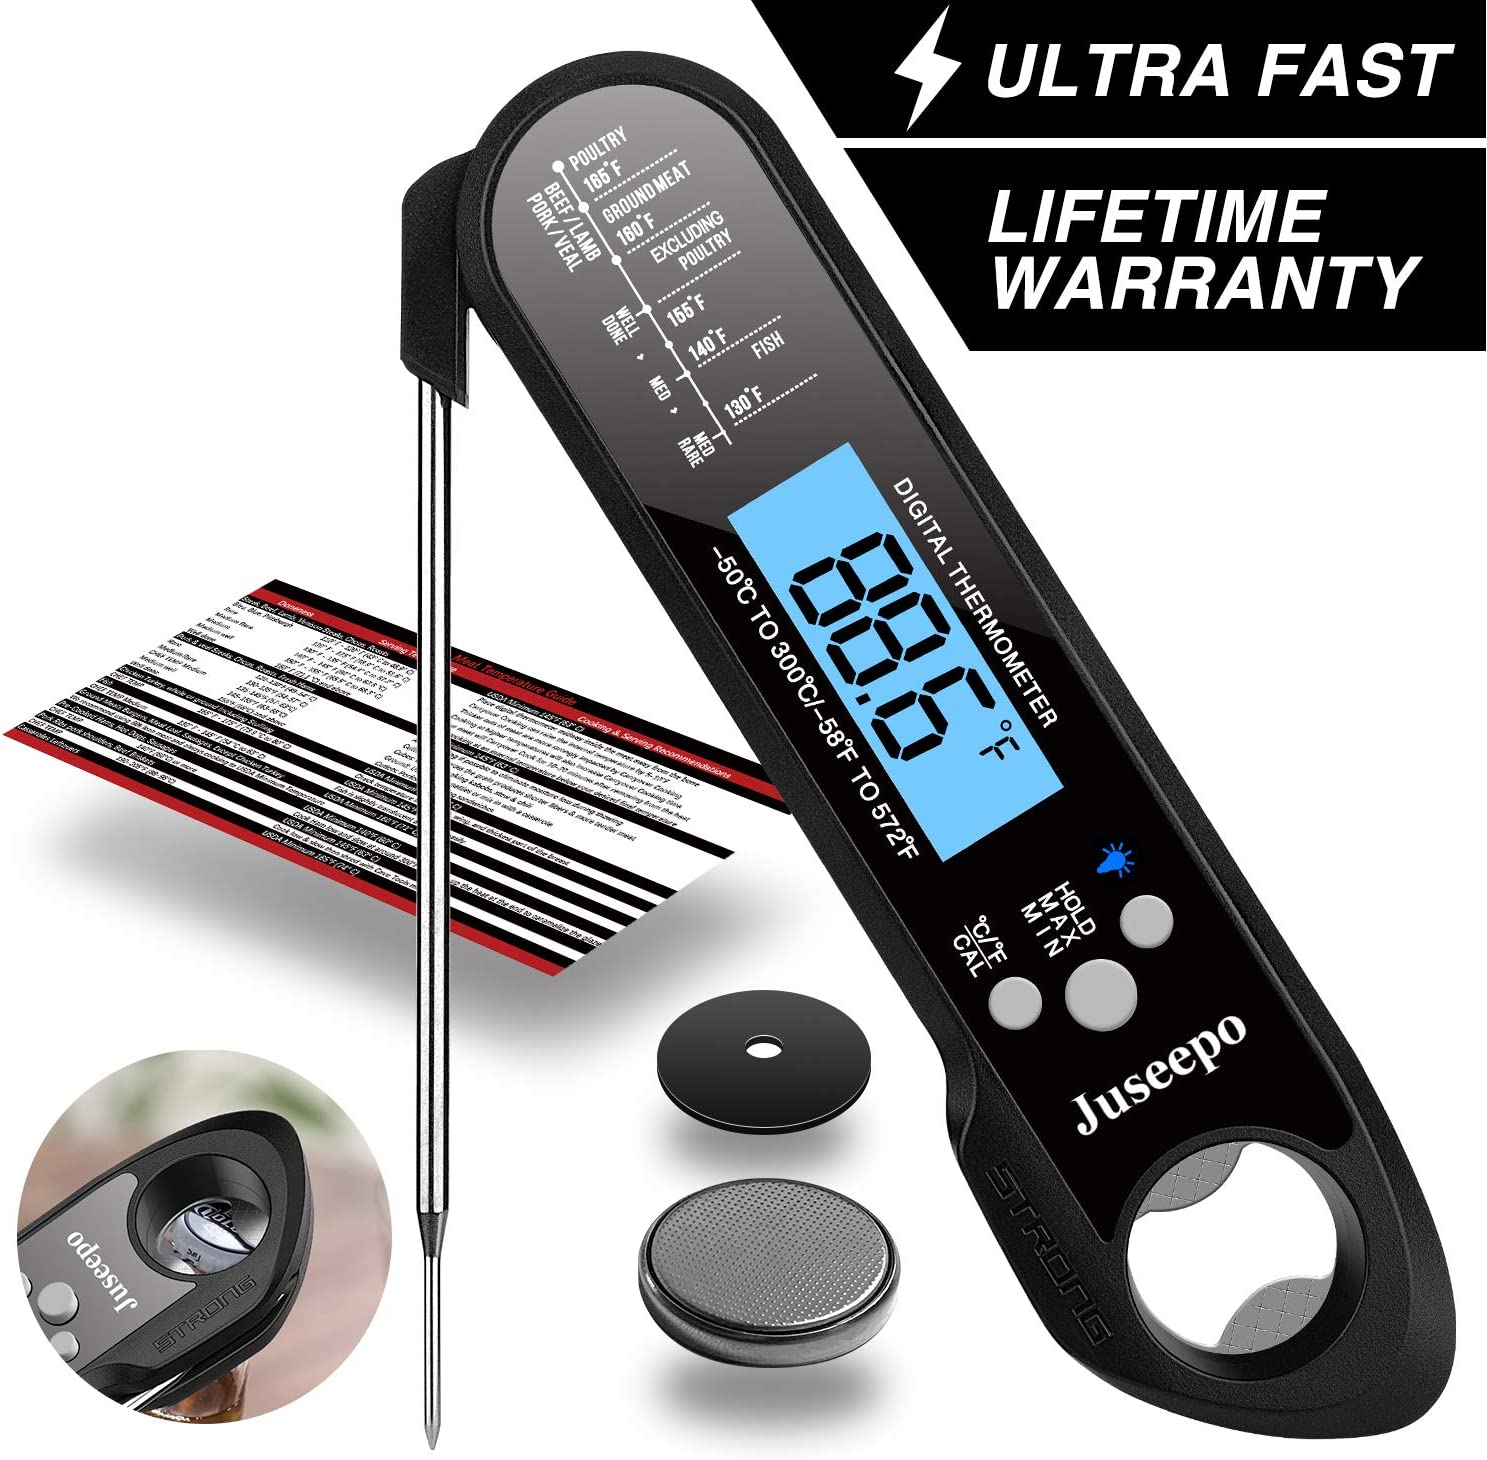 Juseepo Waterproof Digital Instant Read Meat Thermometer - Ultra Fast Thermometer with Backlight & Calibration for Kitchen, Outdoor Cooking, Grill BBQ, and Liquids(Black)